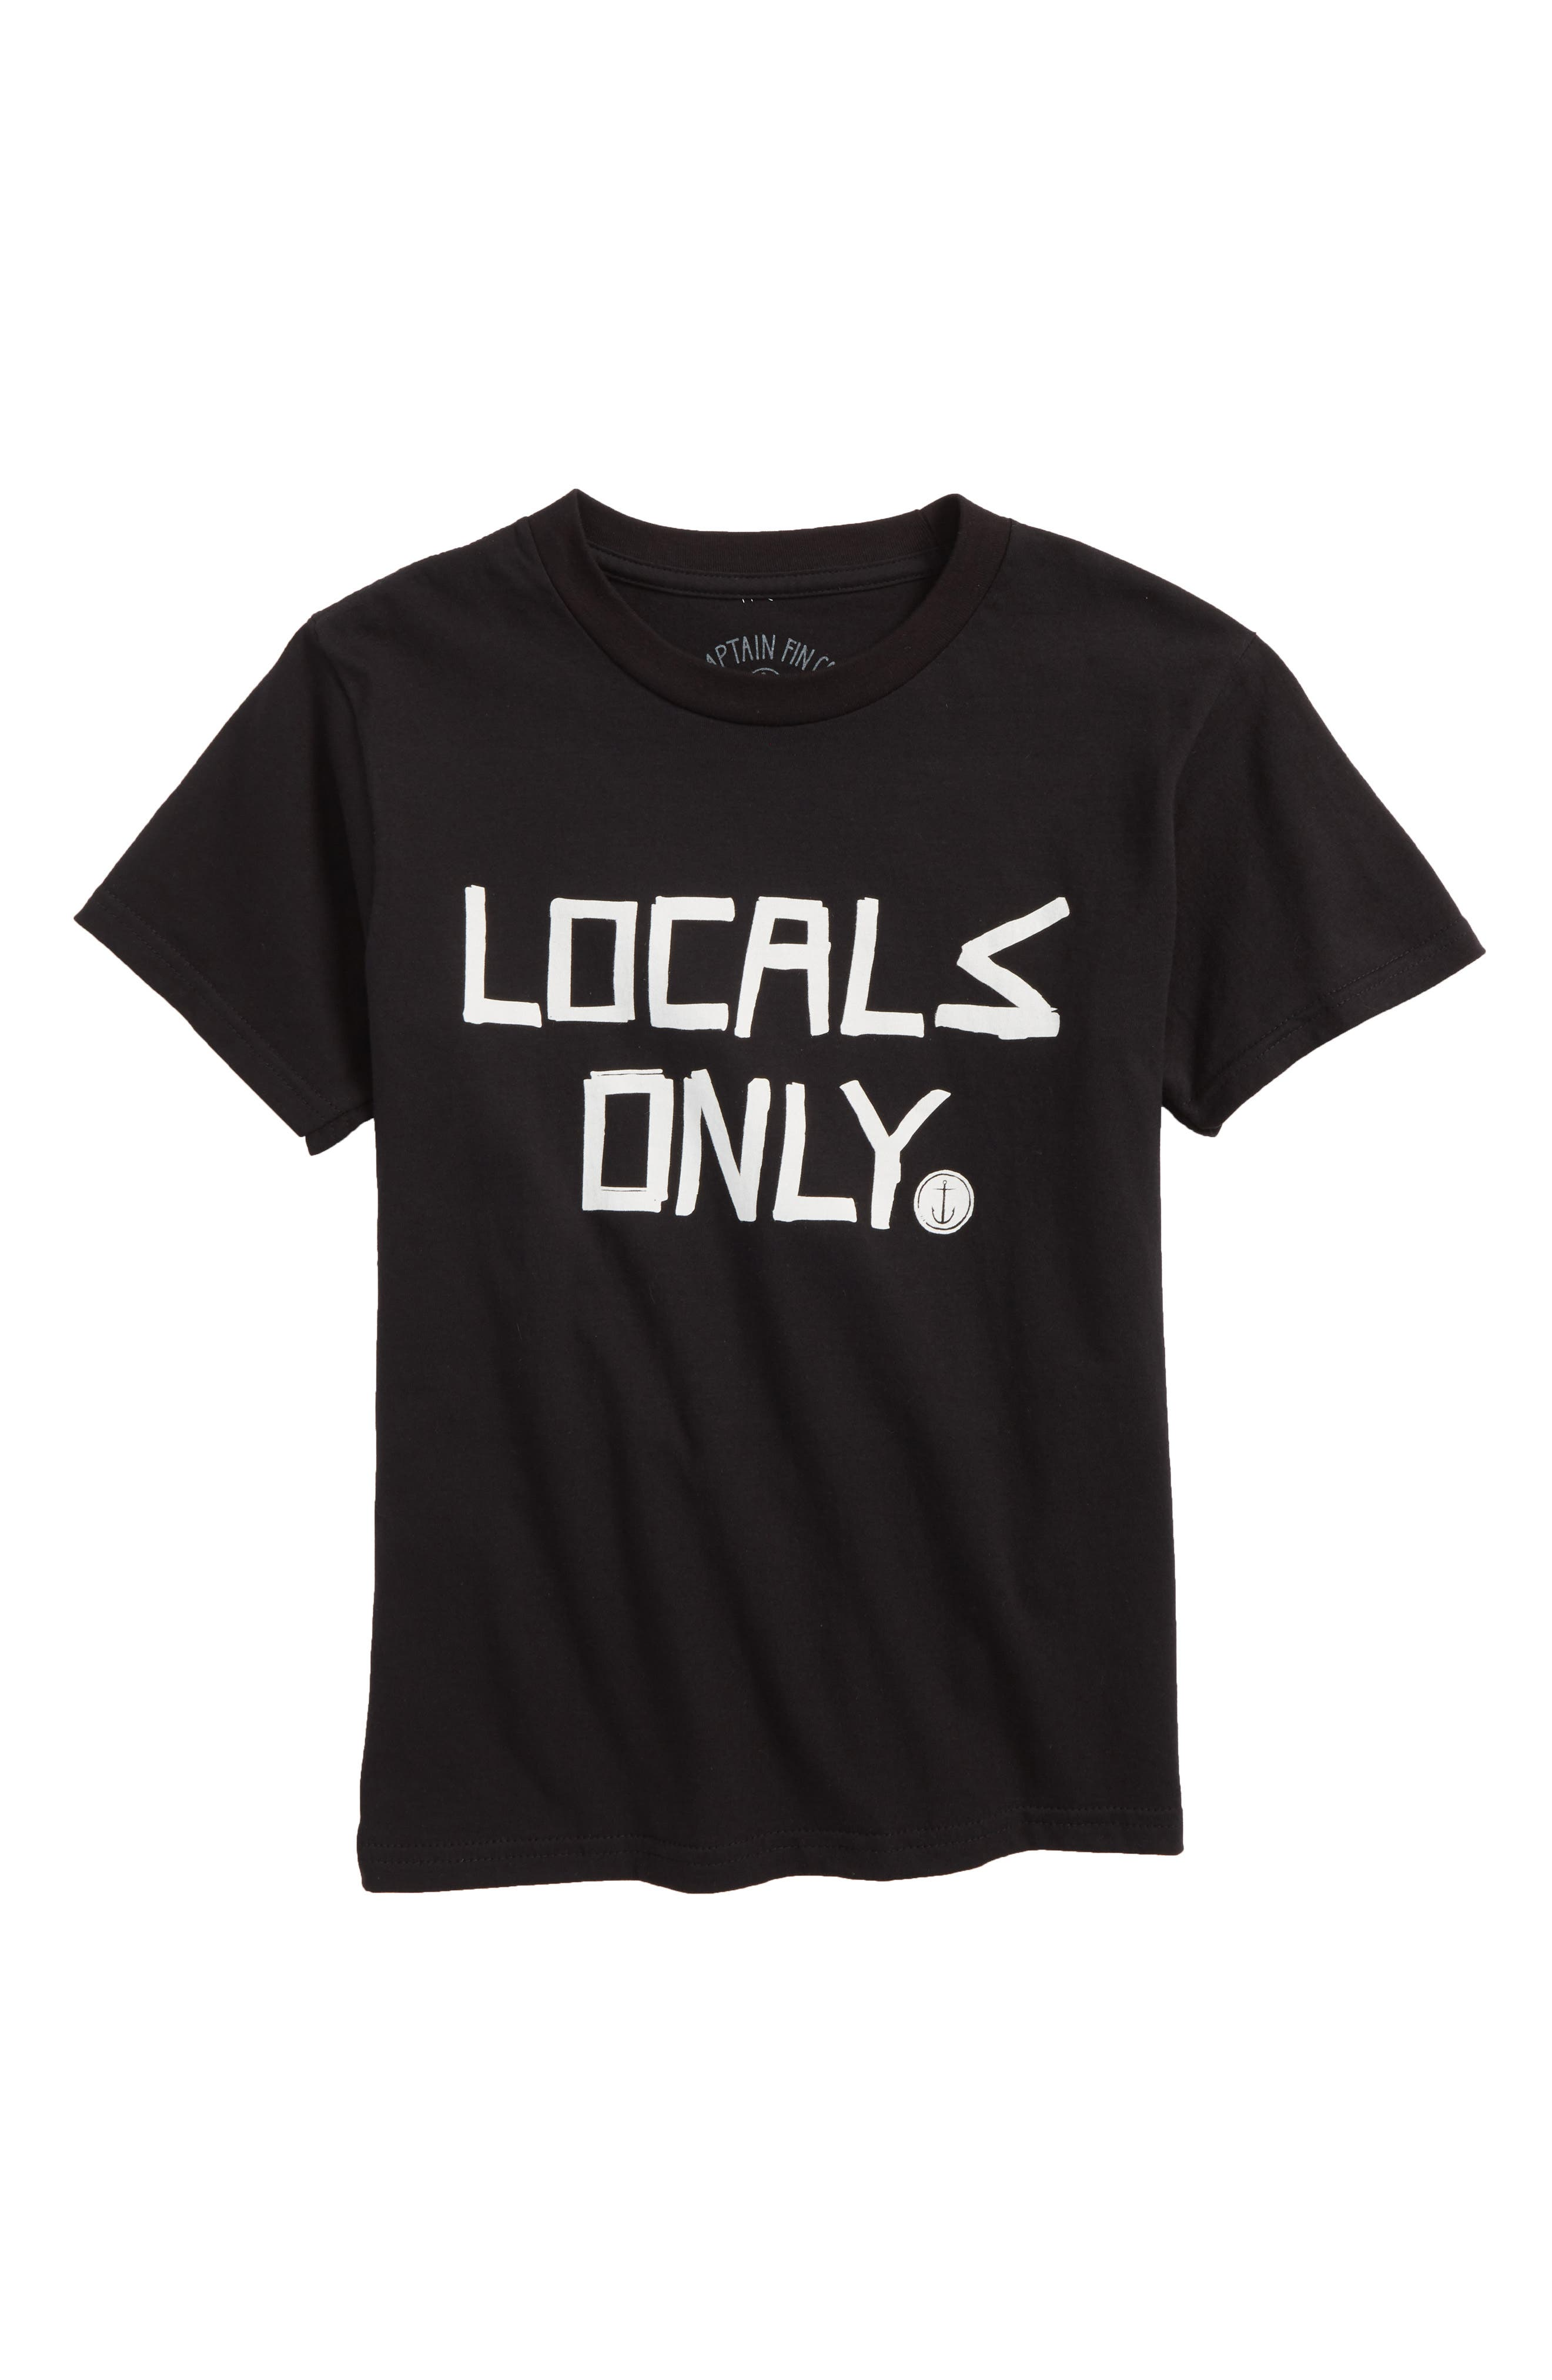 Locals Only T-Shirt,                             Main thumbnail 1, color,                             001